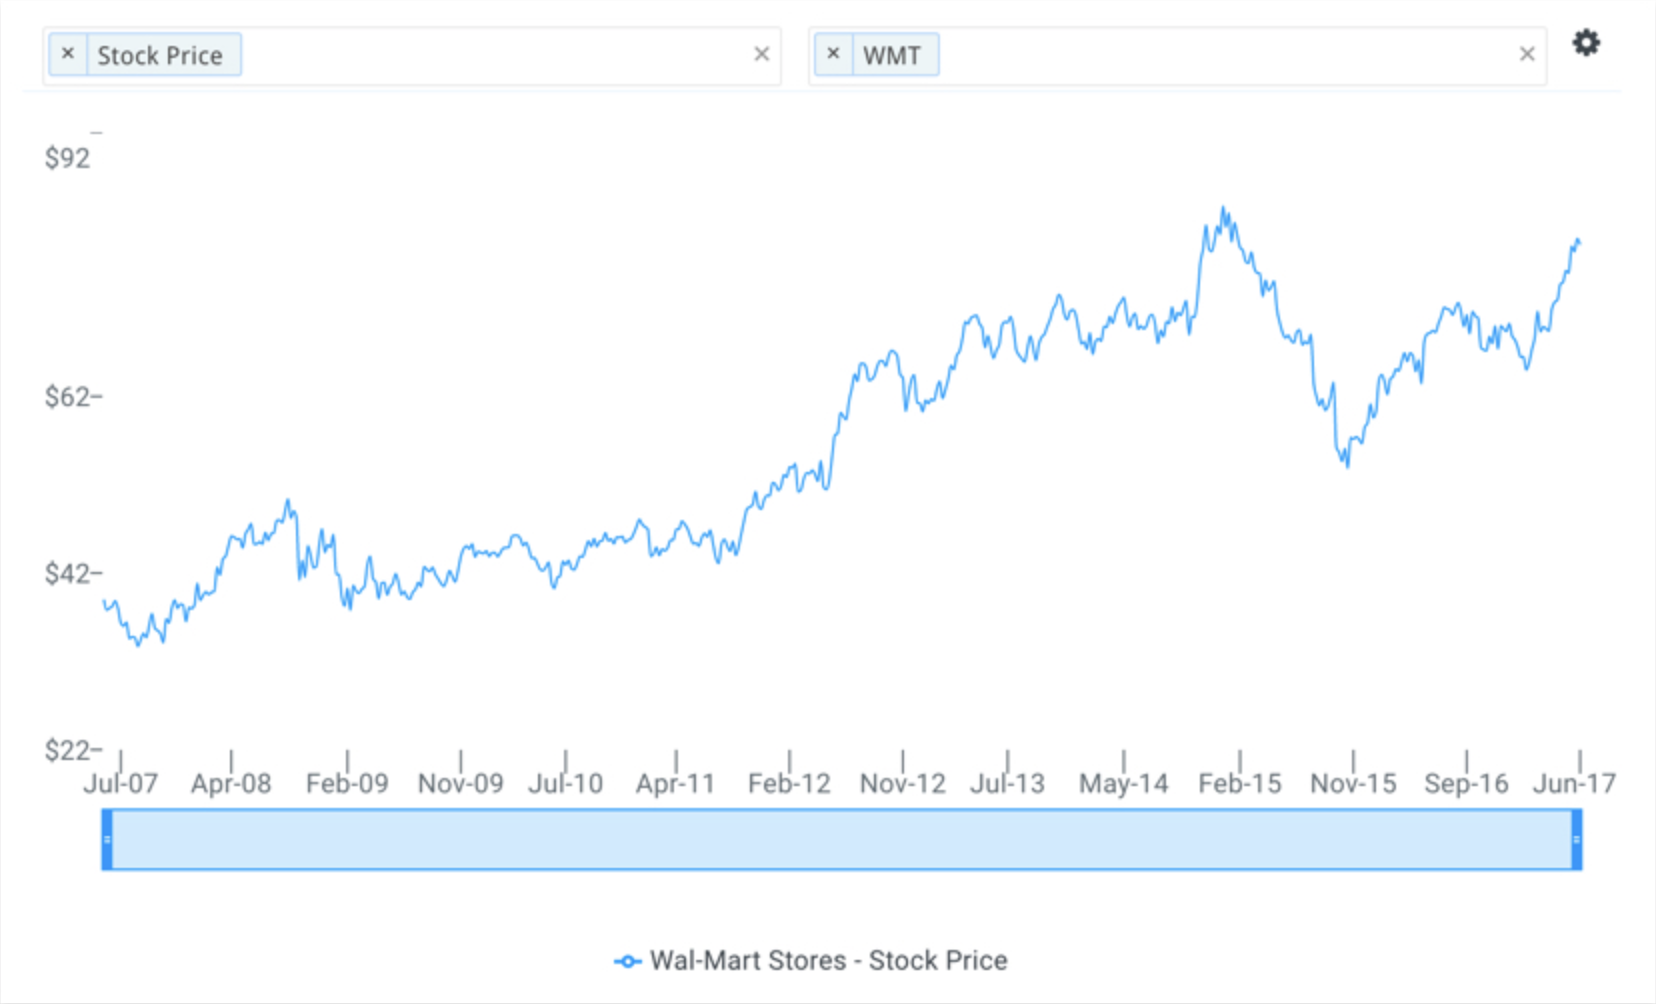 Skx Stock Quote Here's Why Walmart's Stock Will Break $90  Benzinga